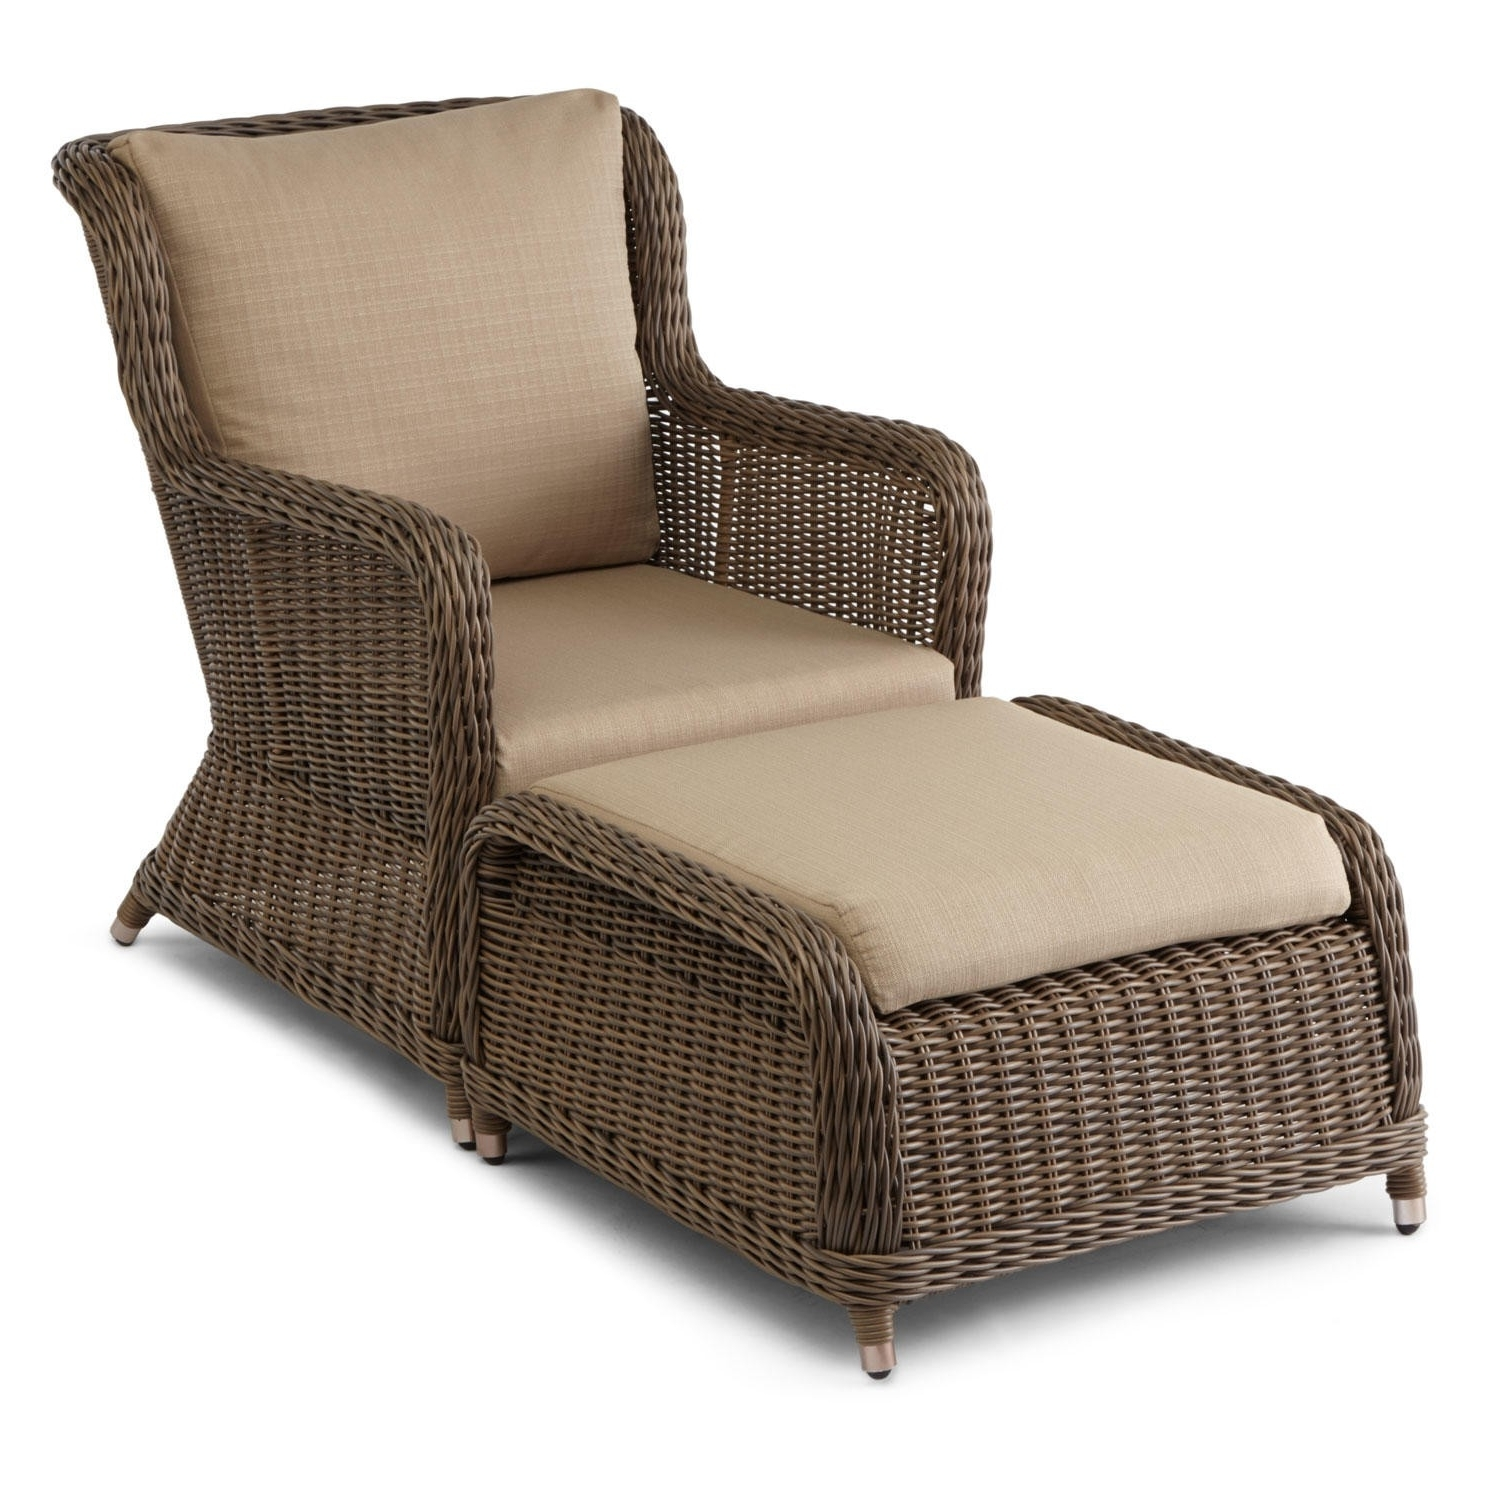 Wicker Chair With Ottoman – Modern Chairs Quality Interior 2018 Within Well Known Wicker Rocking Chairs And Ottoman (View 19 of 20)